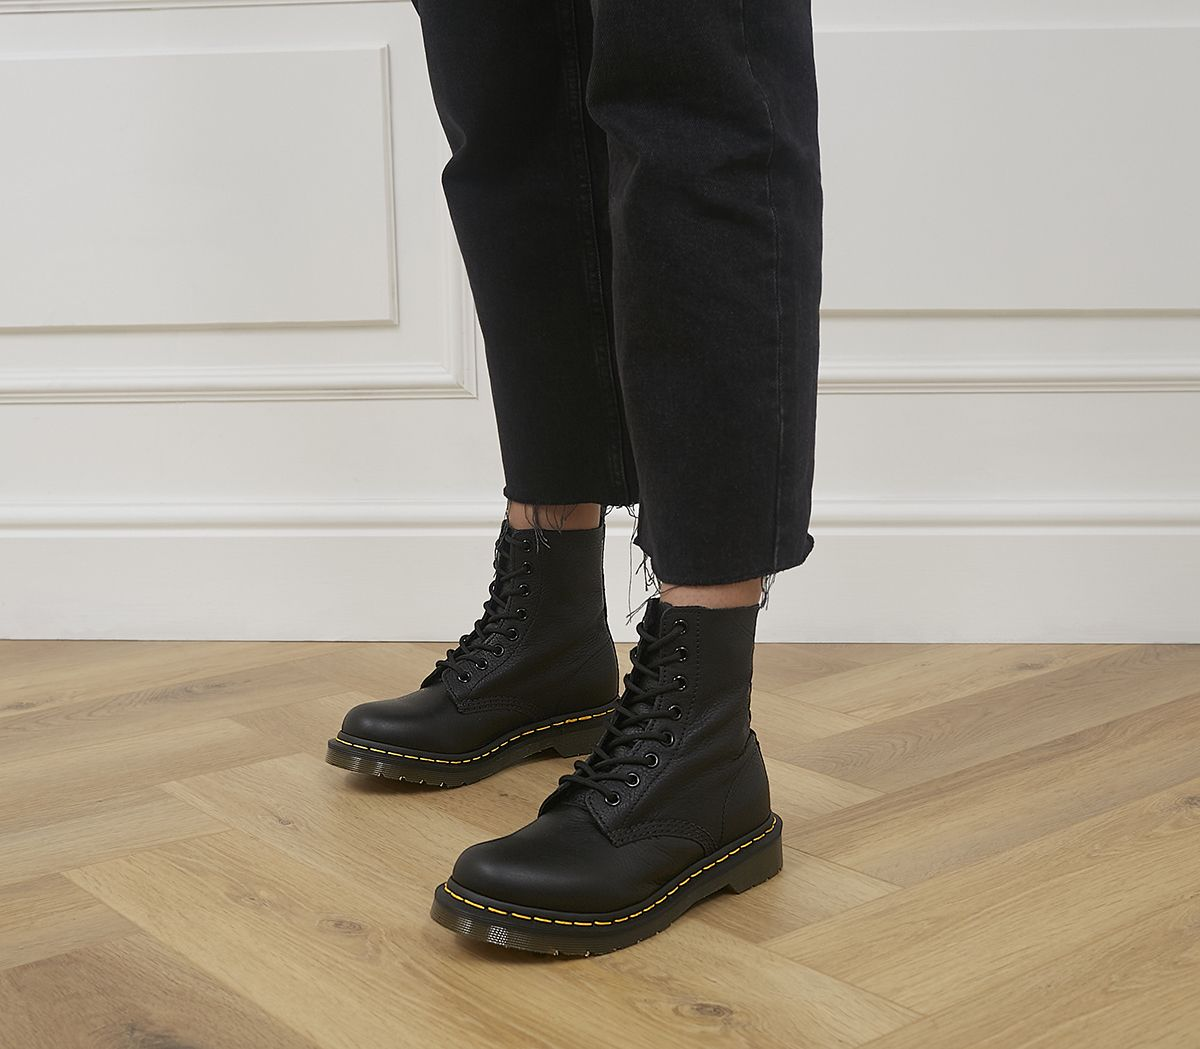 c07dd2395591 Dr. Martens 8 Eyelet Lace Up Boots Black Virginia - Ankle Boots